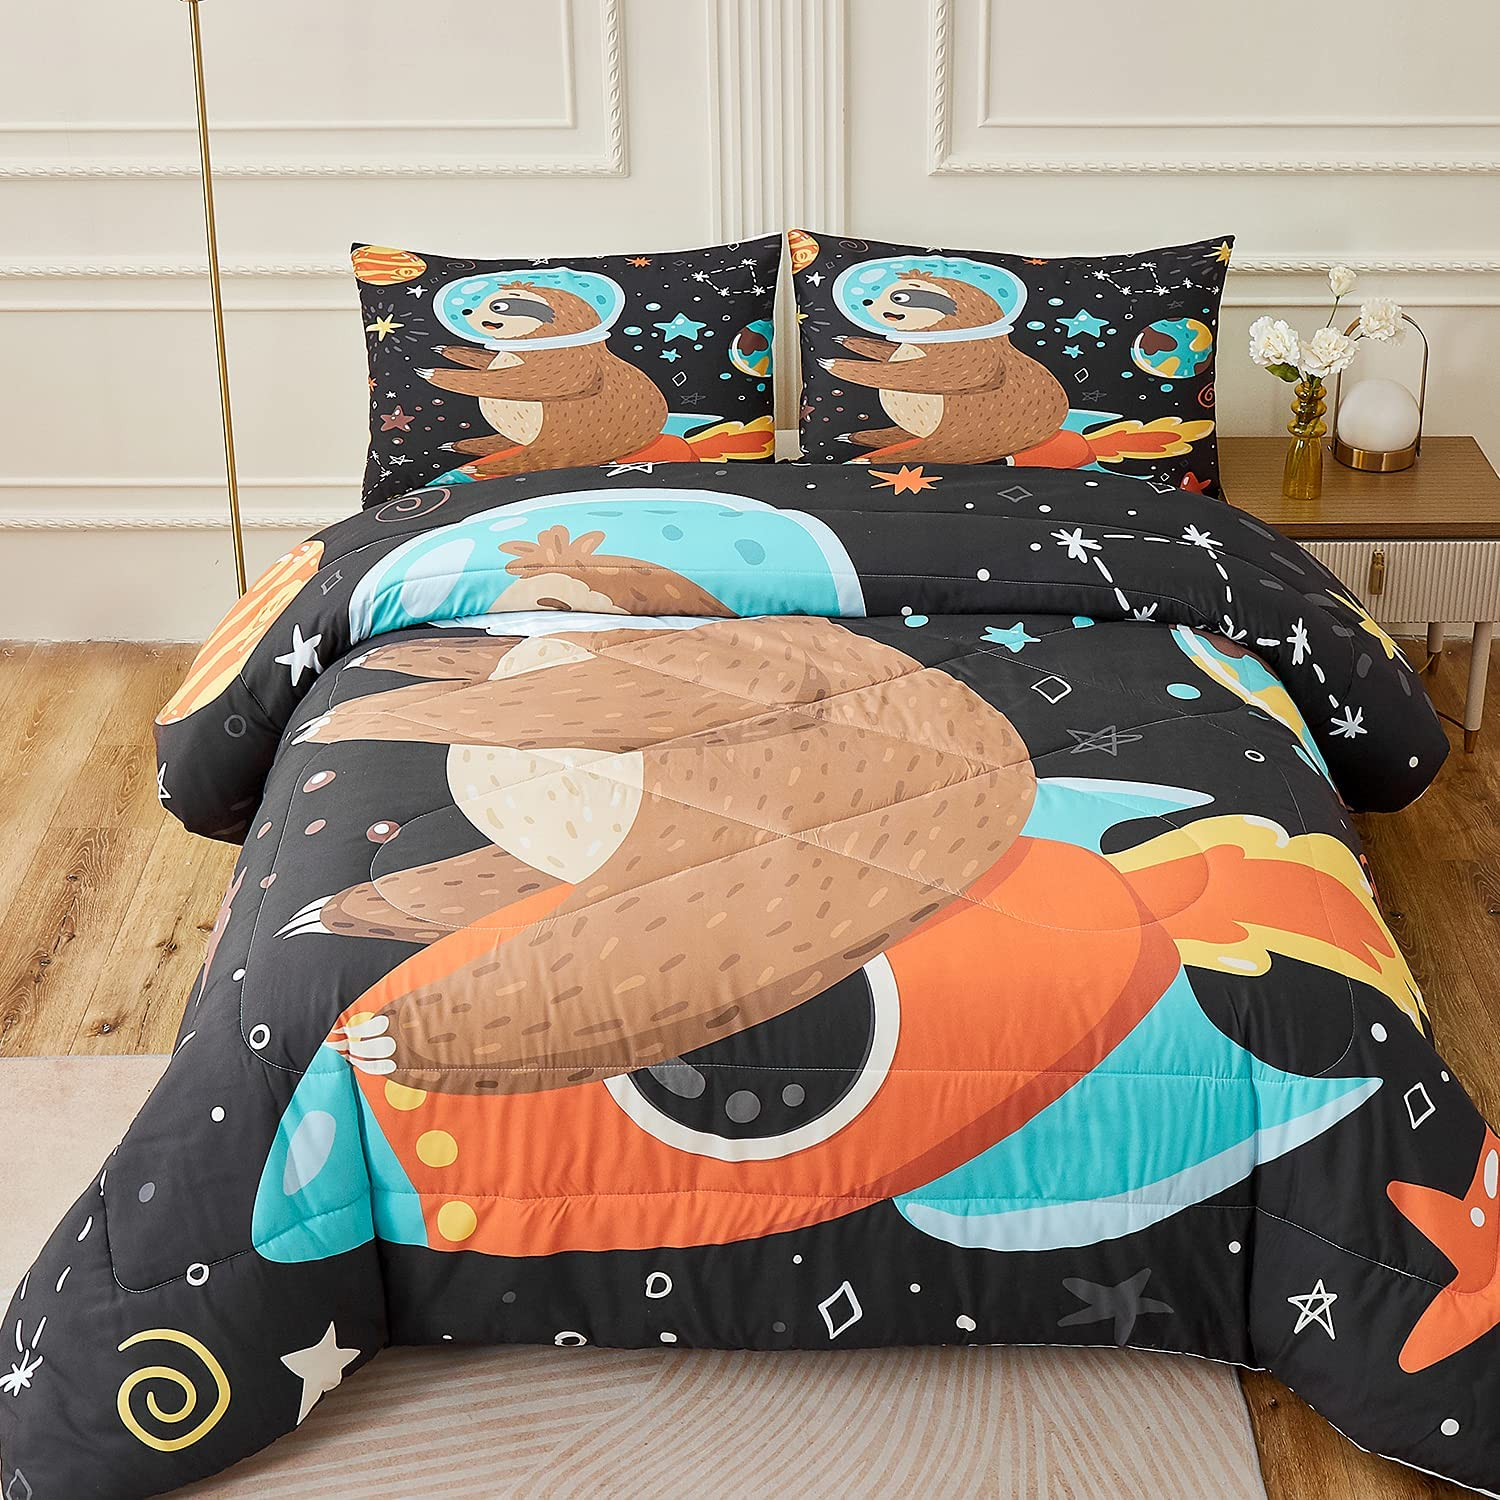 Namoxpa Sloth Comforter Sets Smiling Astronaut 2021 new Cute Very popular Sits o